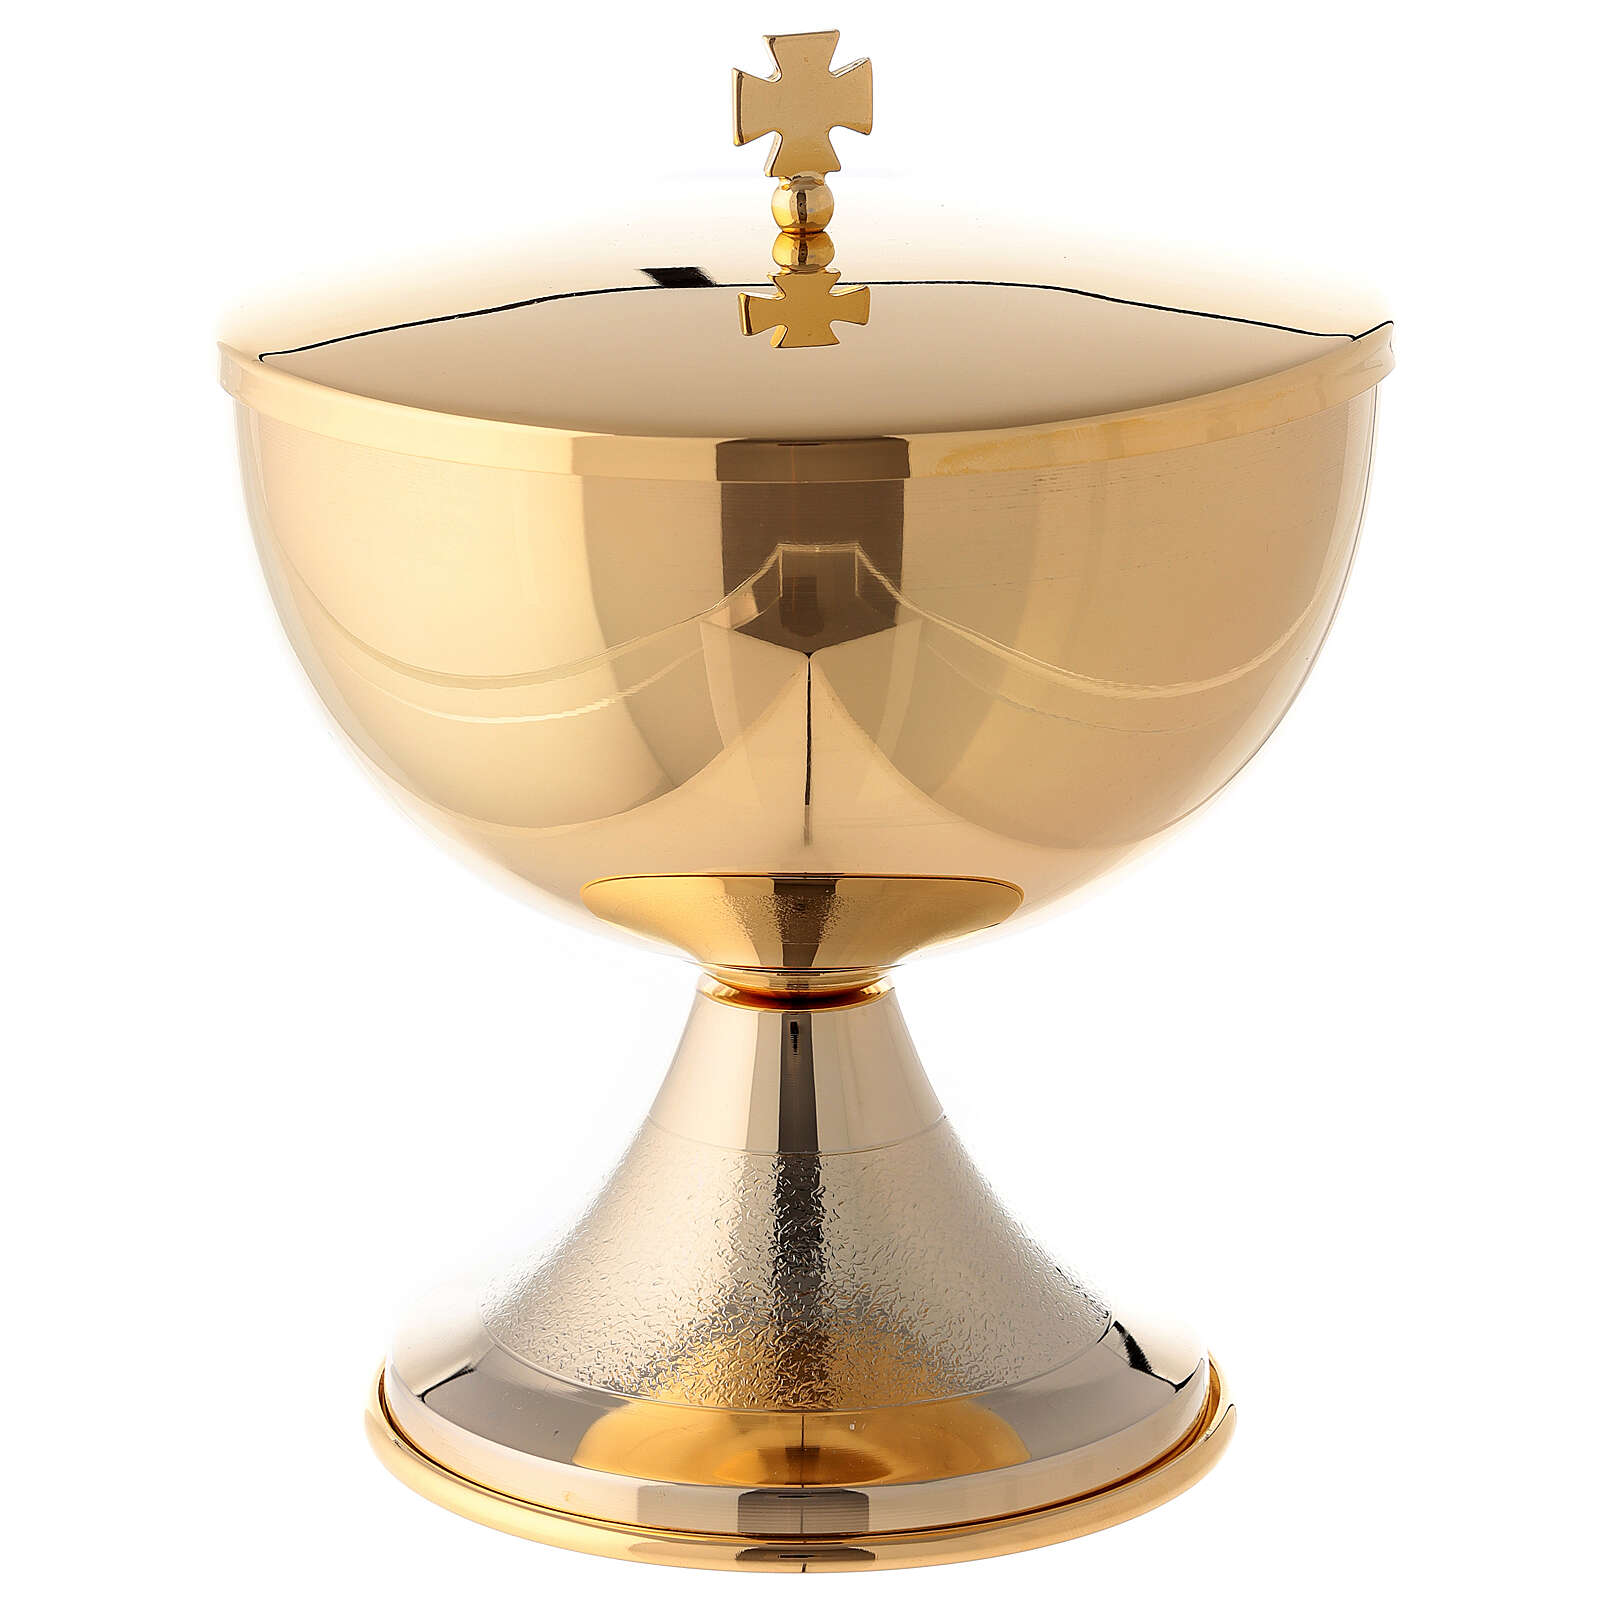 Knurled ciborium in 24-karat gold plated brass 4